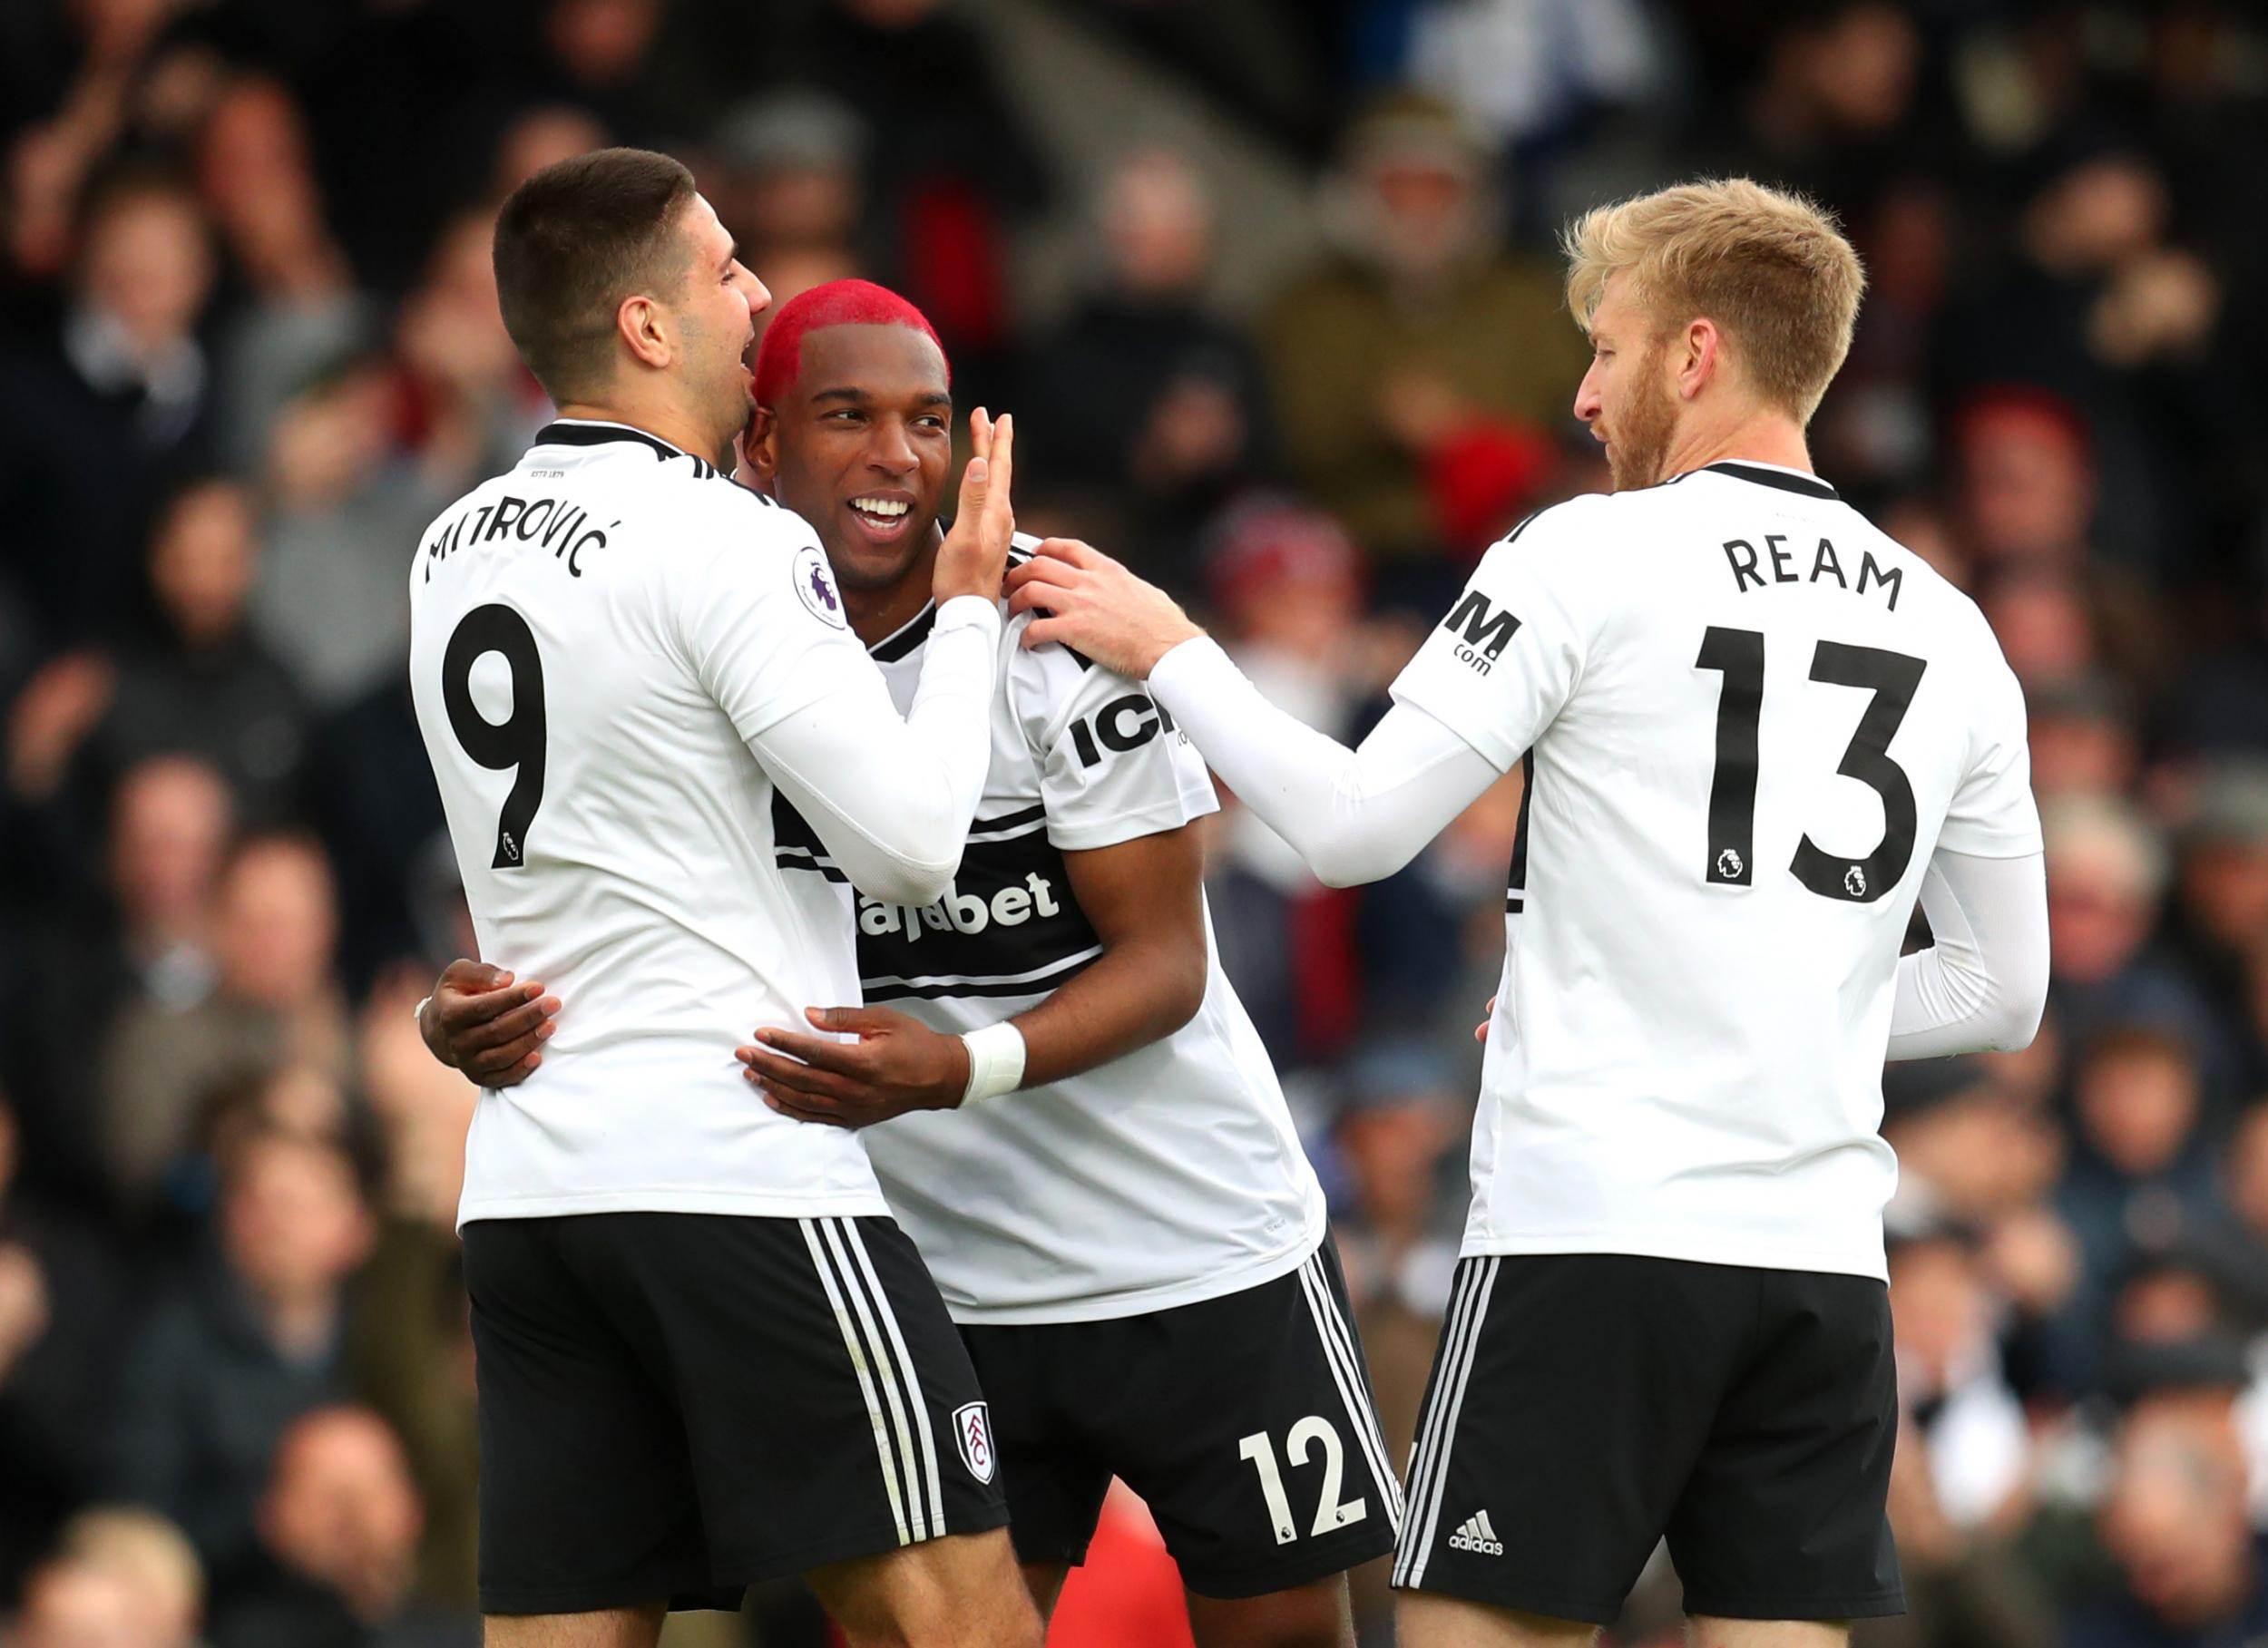 Fulham vs Cardiff: Ryan Babel wins it late to damage Welsh club's slimming survival hopes